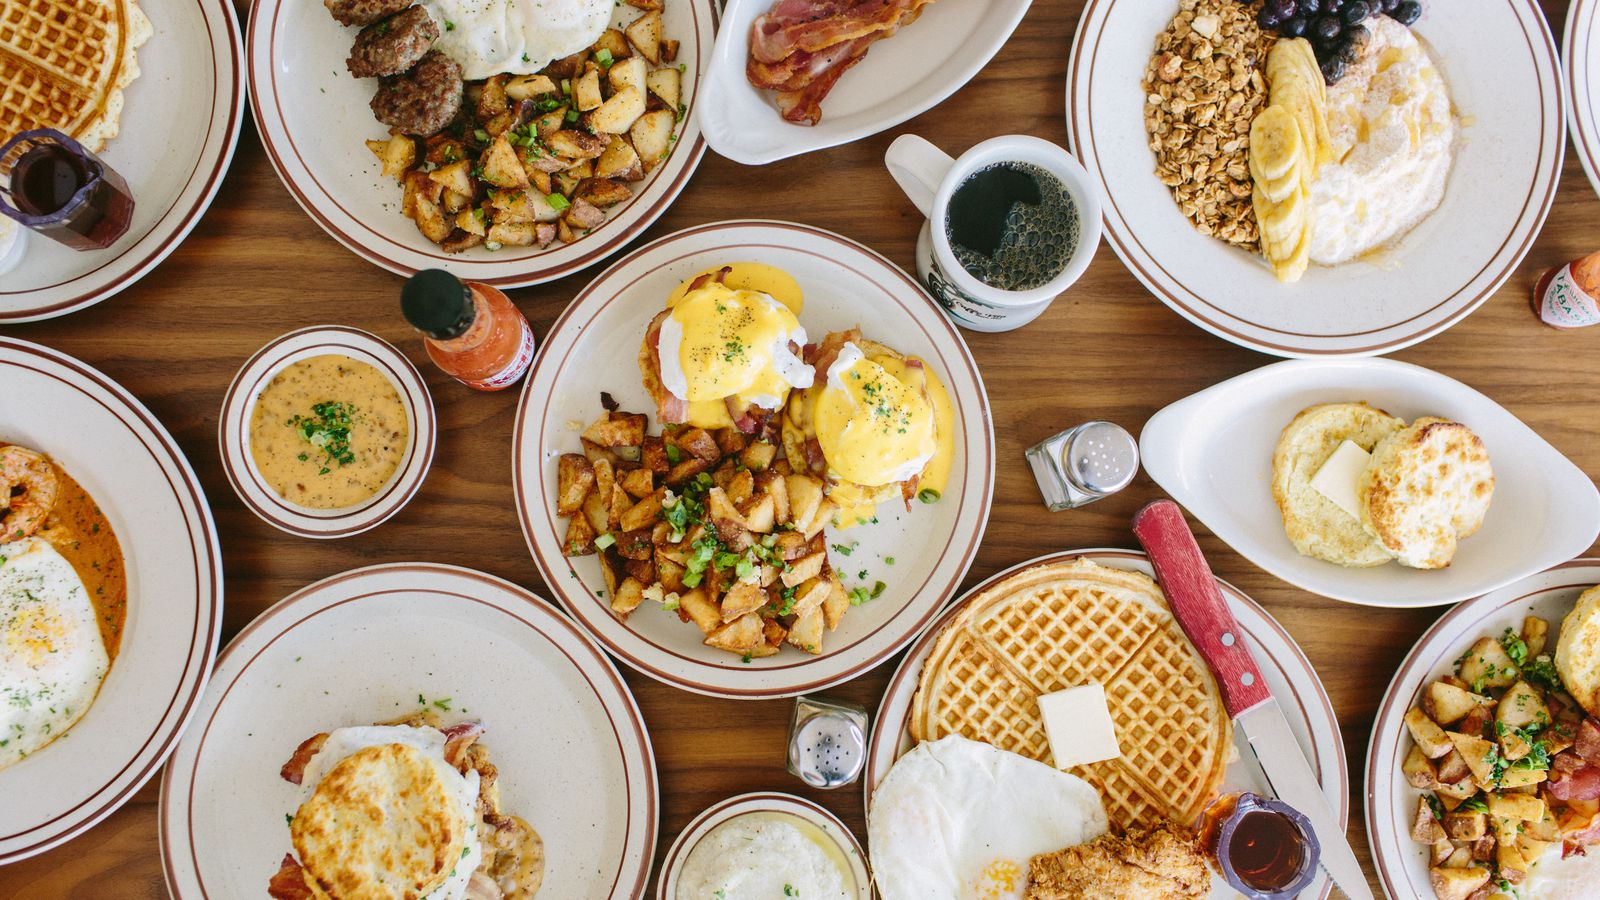 Fat 39 s chicken and waffles rolling out brunch this weekend for Table 6 brunch